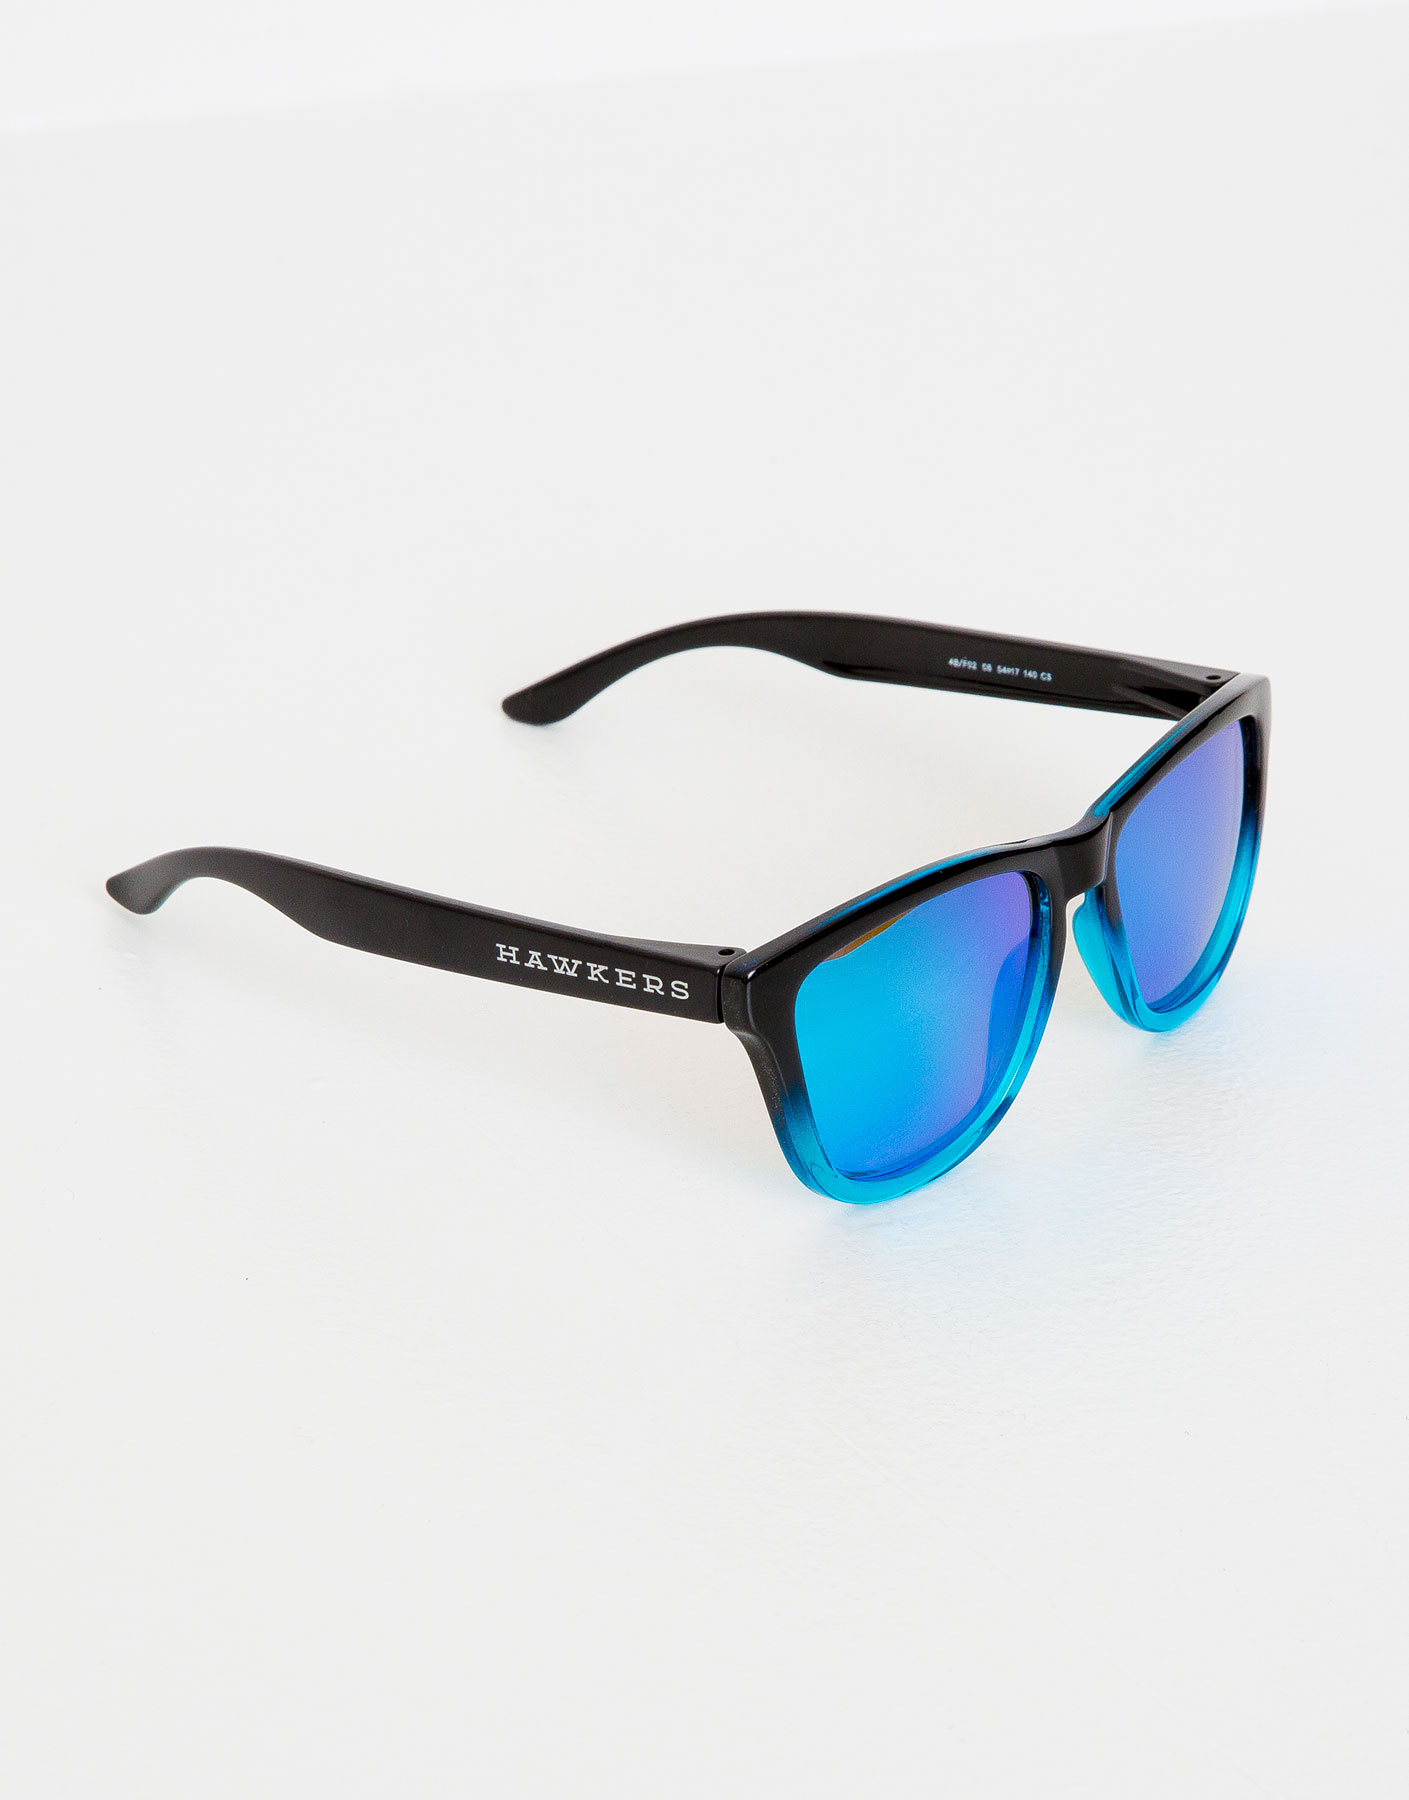 Hawkers fusion clear blue one sunglasses